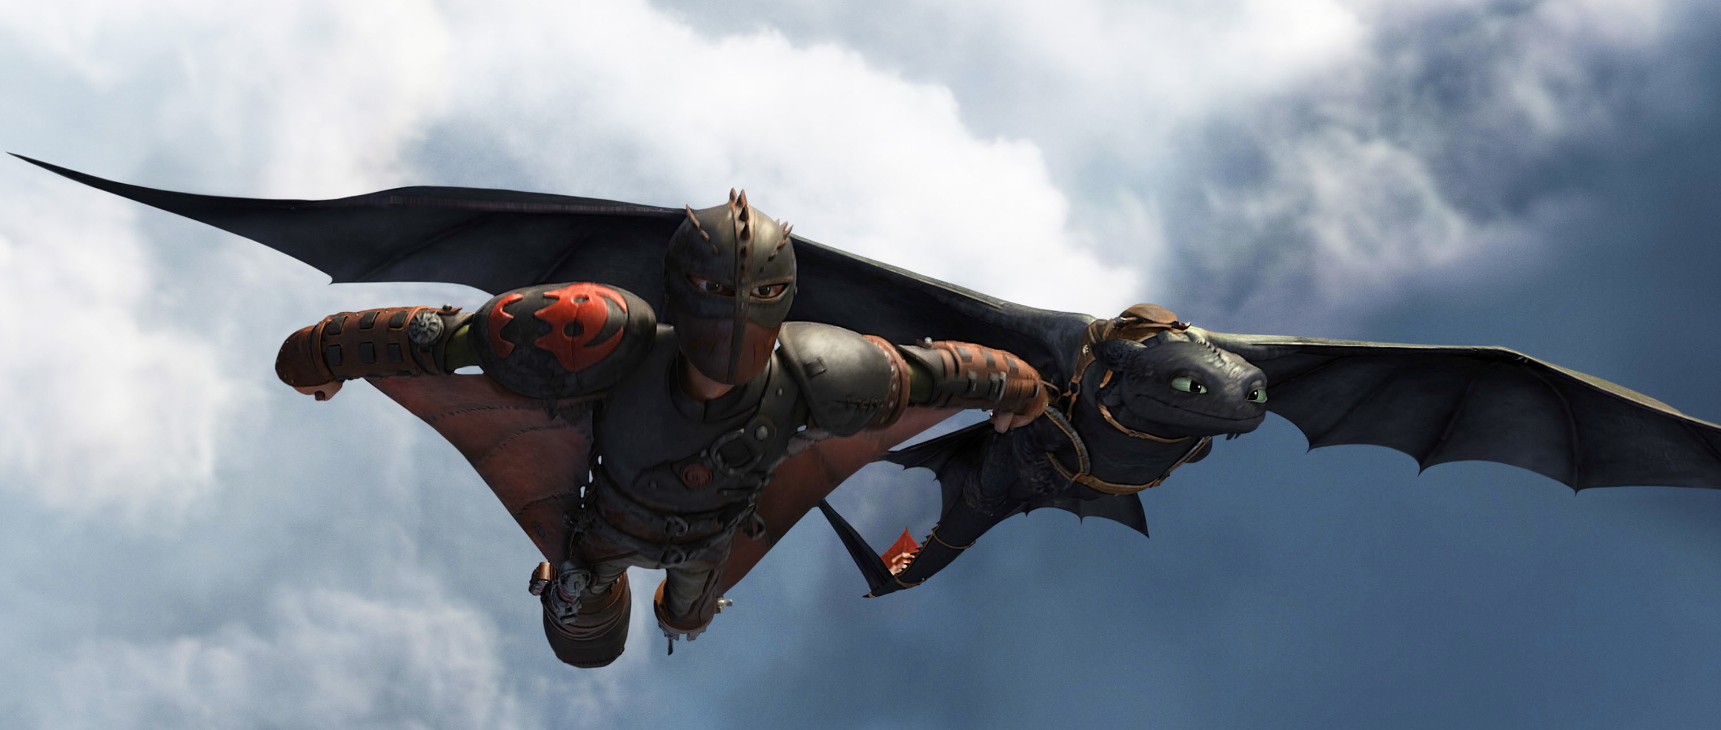 Toothless How To Train Your Dragon Hiccup 1920x1080 Wallpaper Art Hd ...